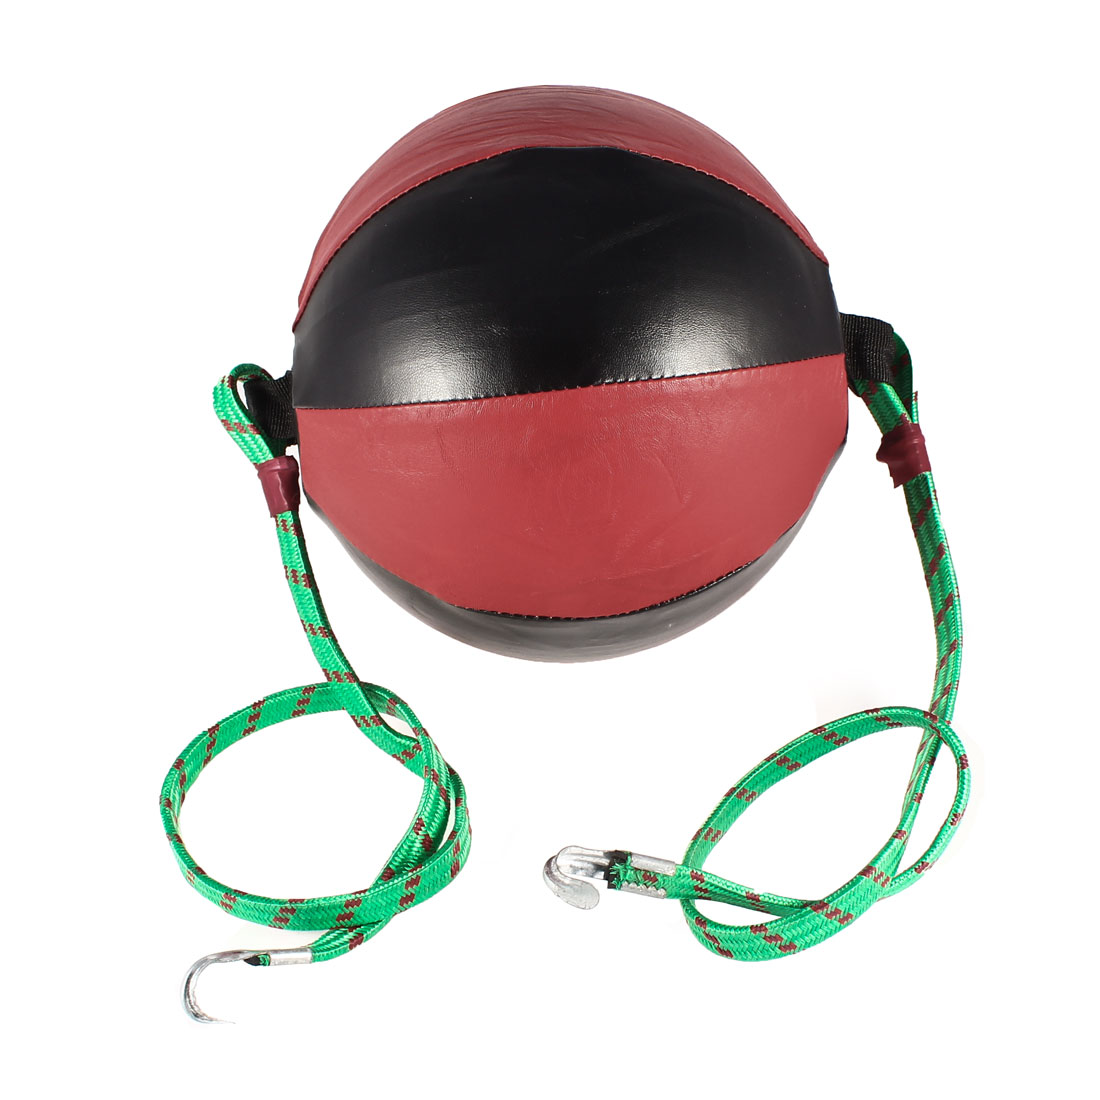 Kickboxing Sports Both End Faux Leather Boxing Speed Ball Red Black w Green Rope